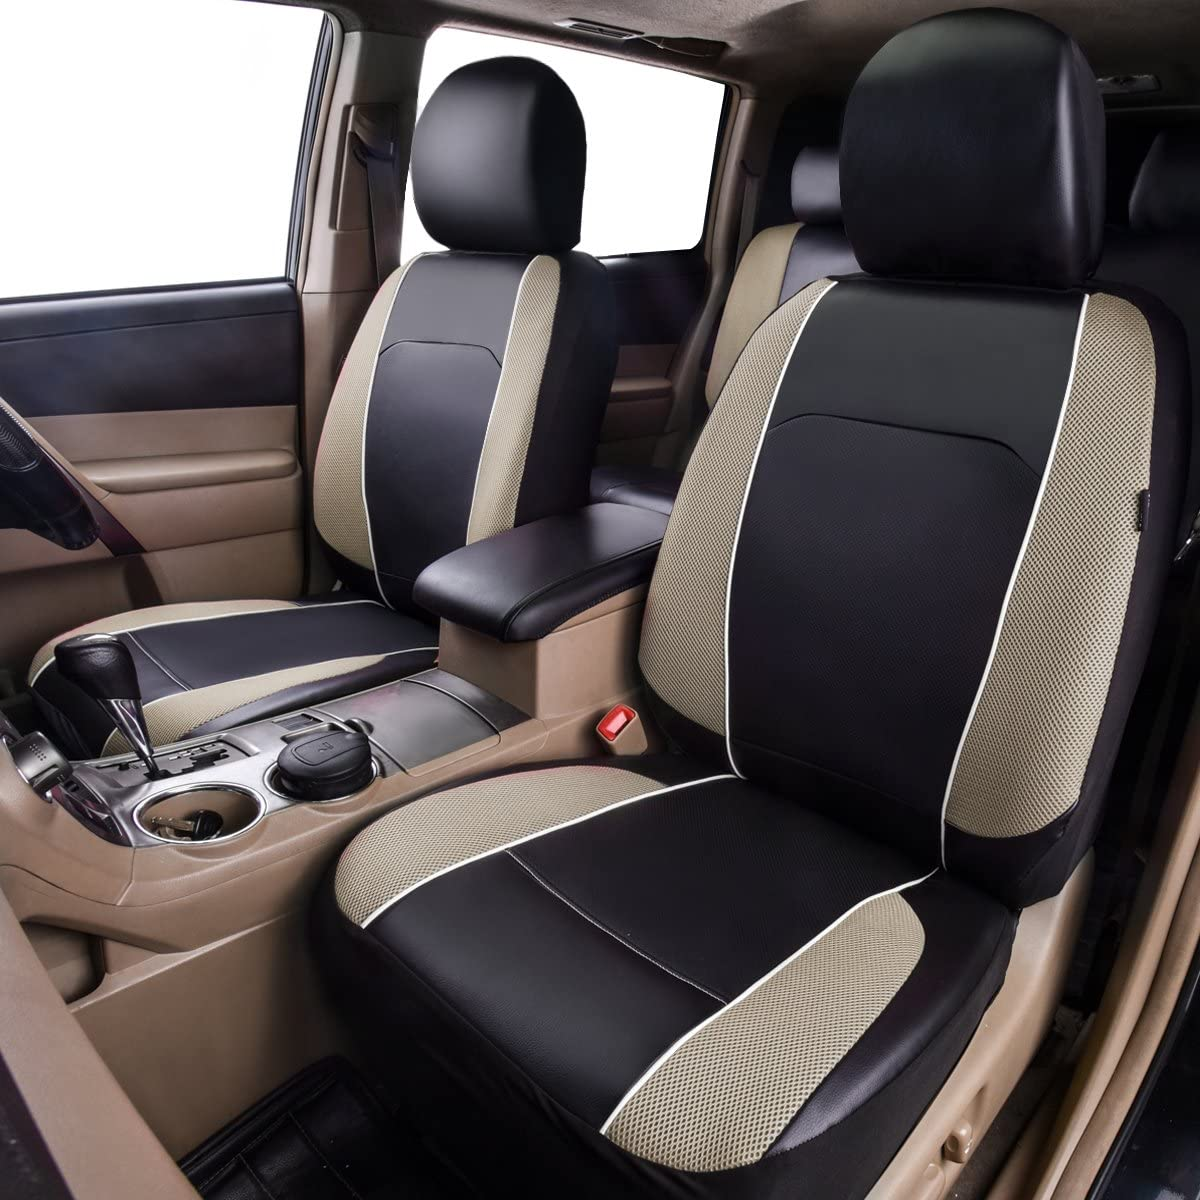 Suvs Trucks Full Seat HORSE KINGDOM Universal Car Seat Covers Faux Leather with Air-mesh Breathable Aibag Compatible Fit Cars Sedans Black with Beige